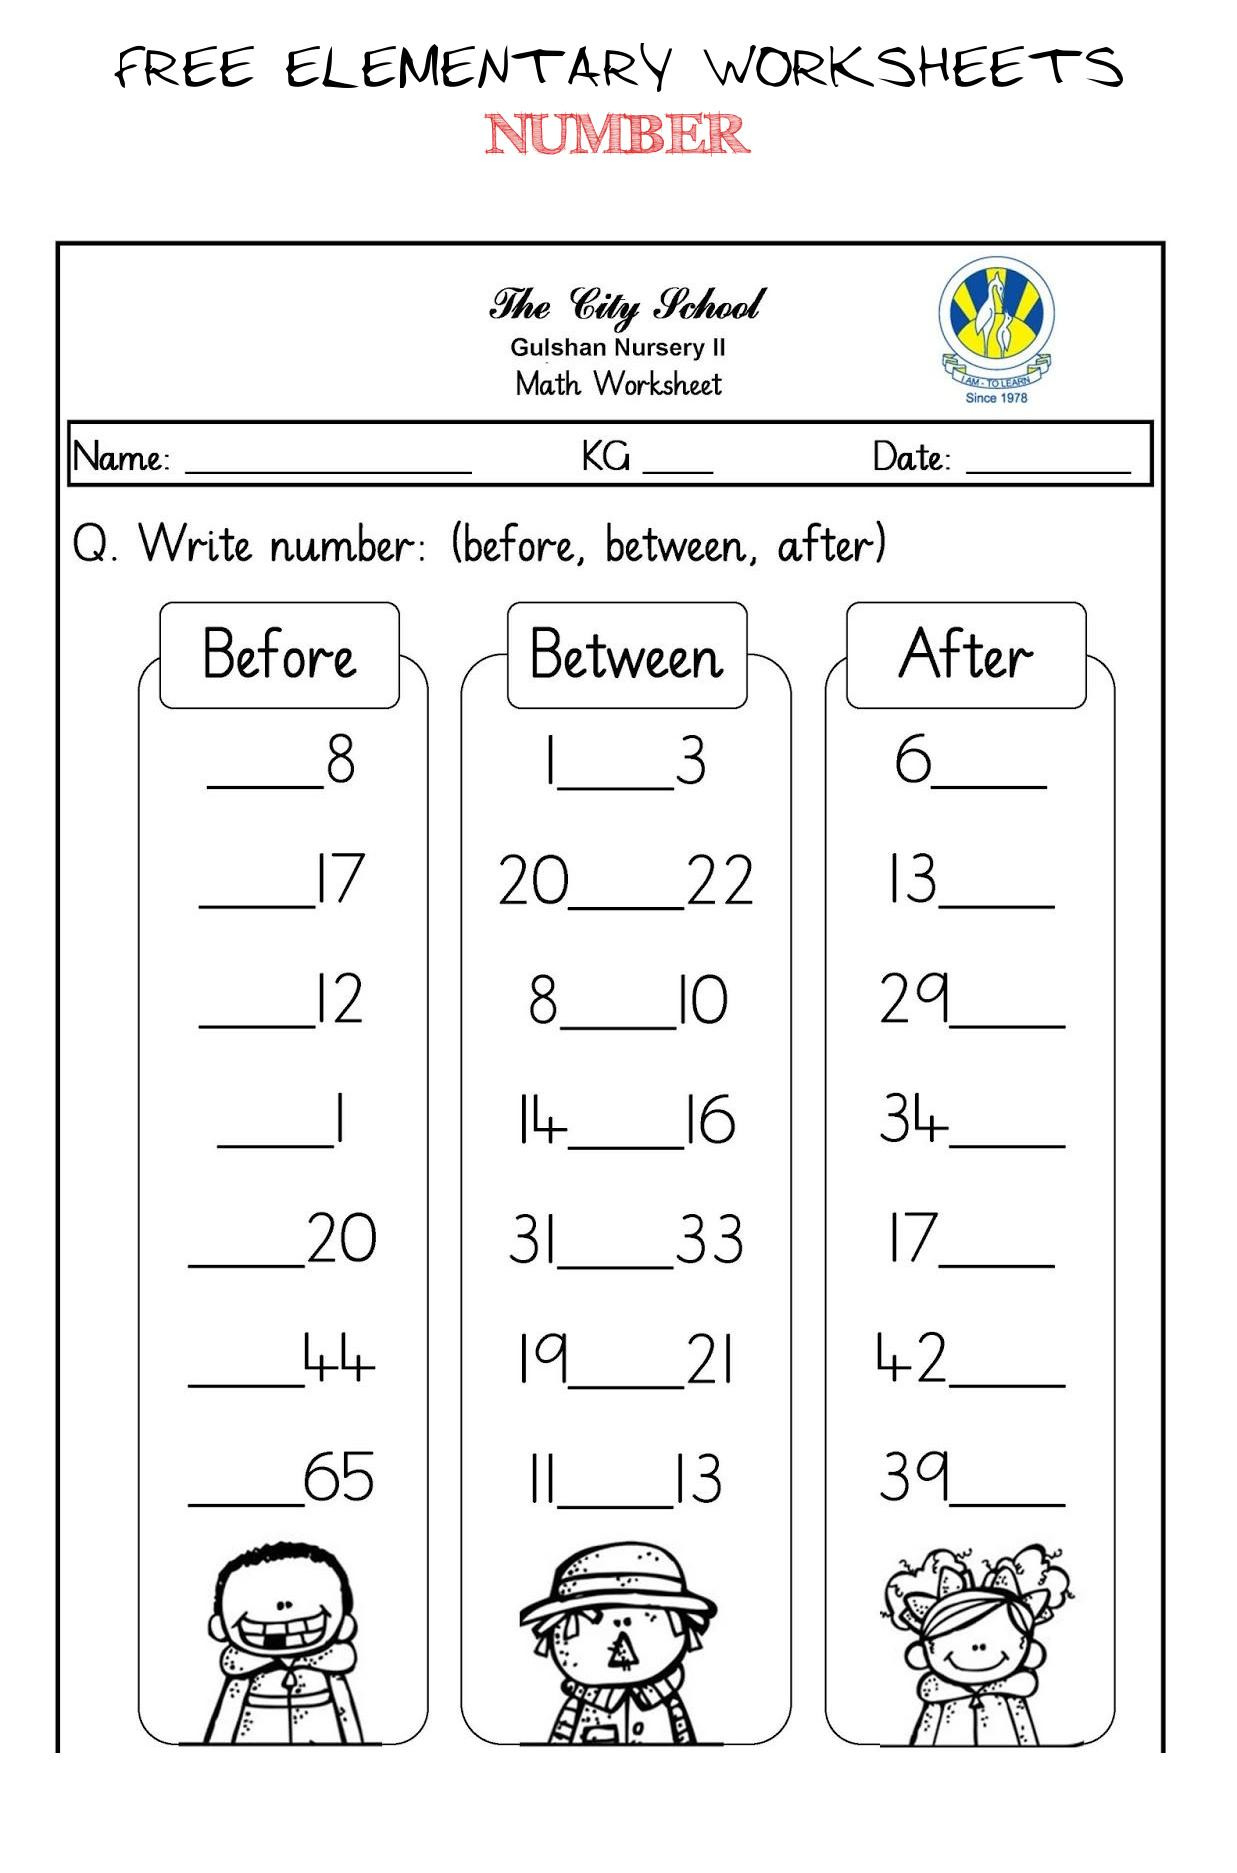 Number before and after Worksheets